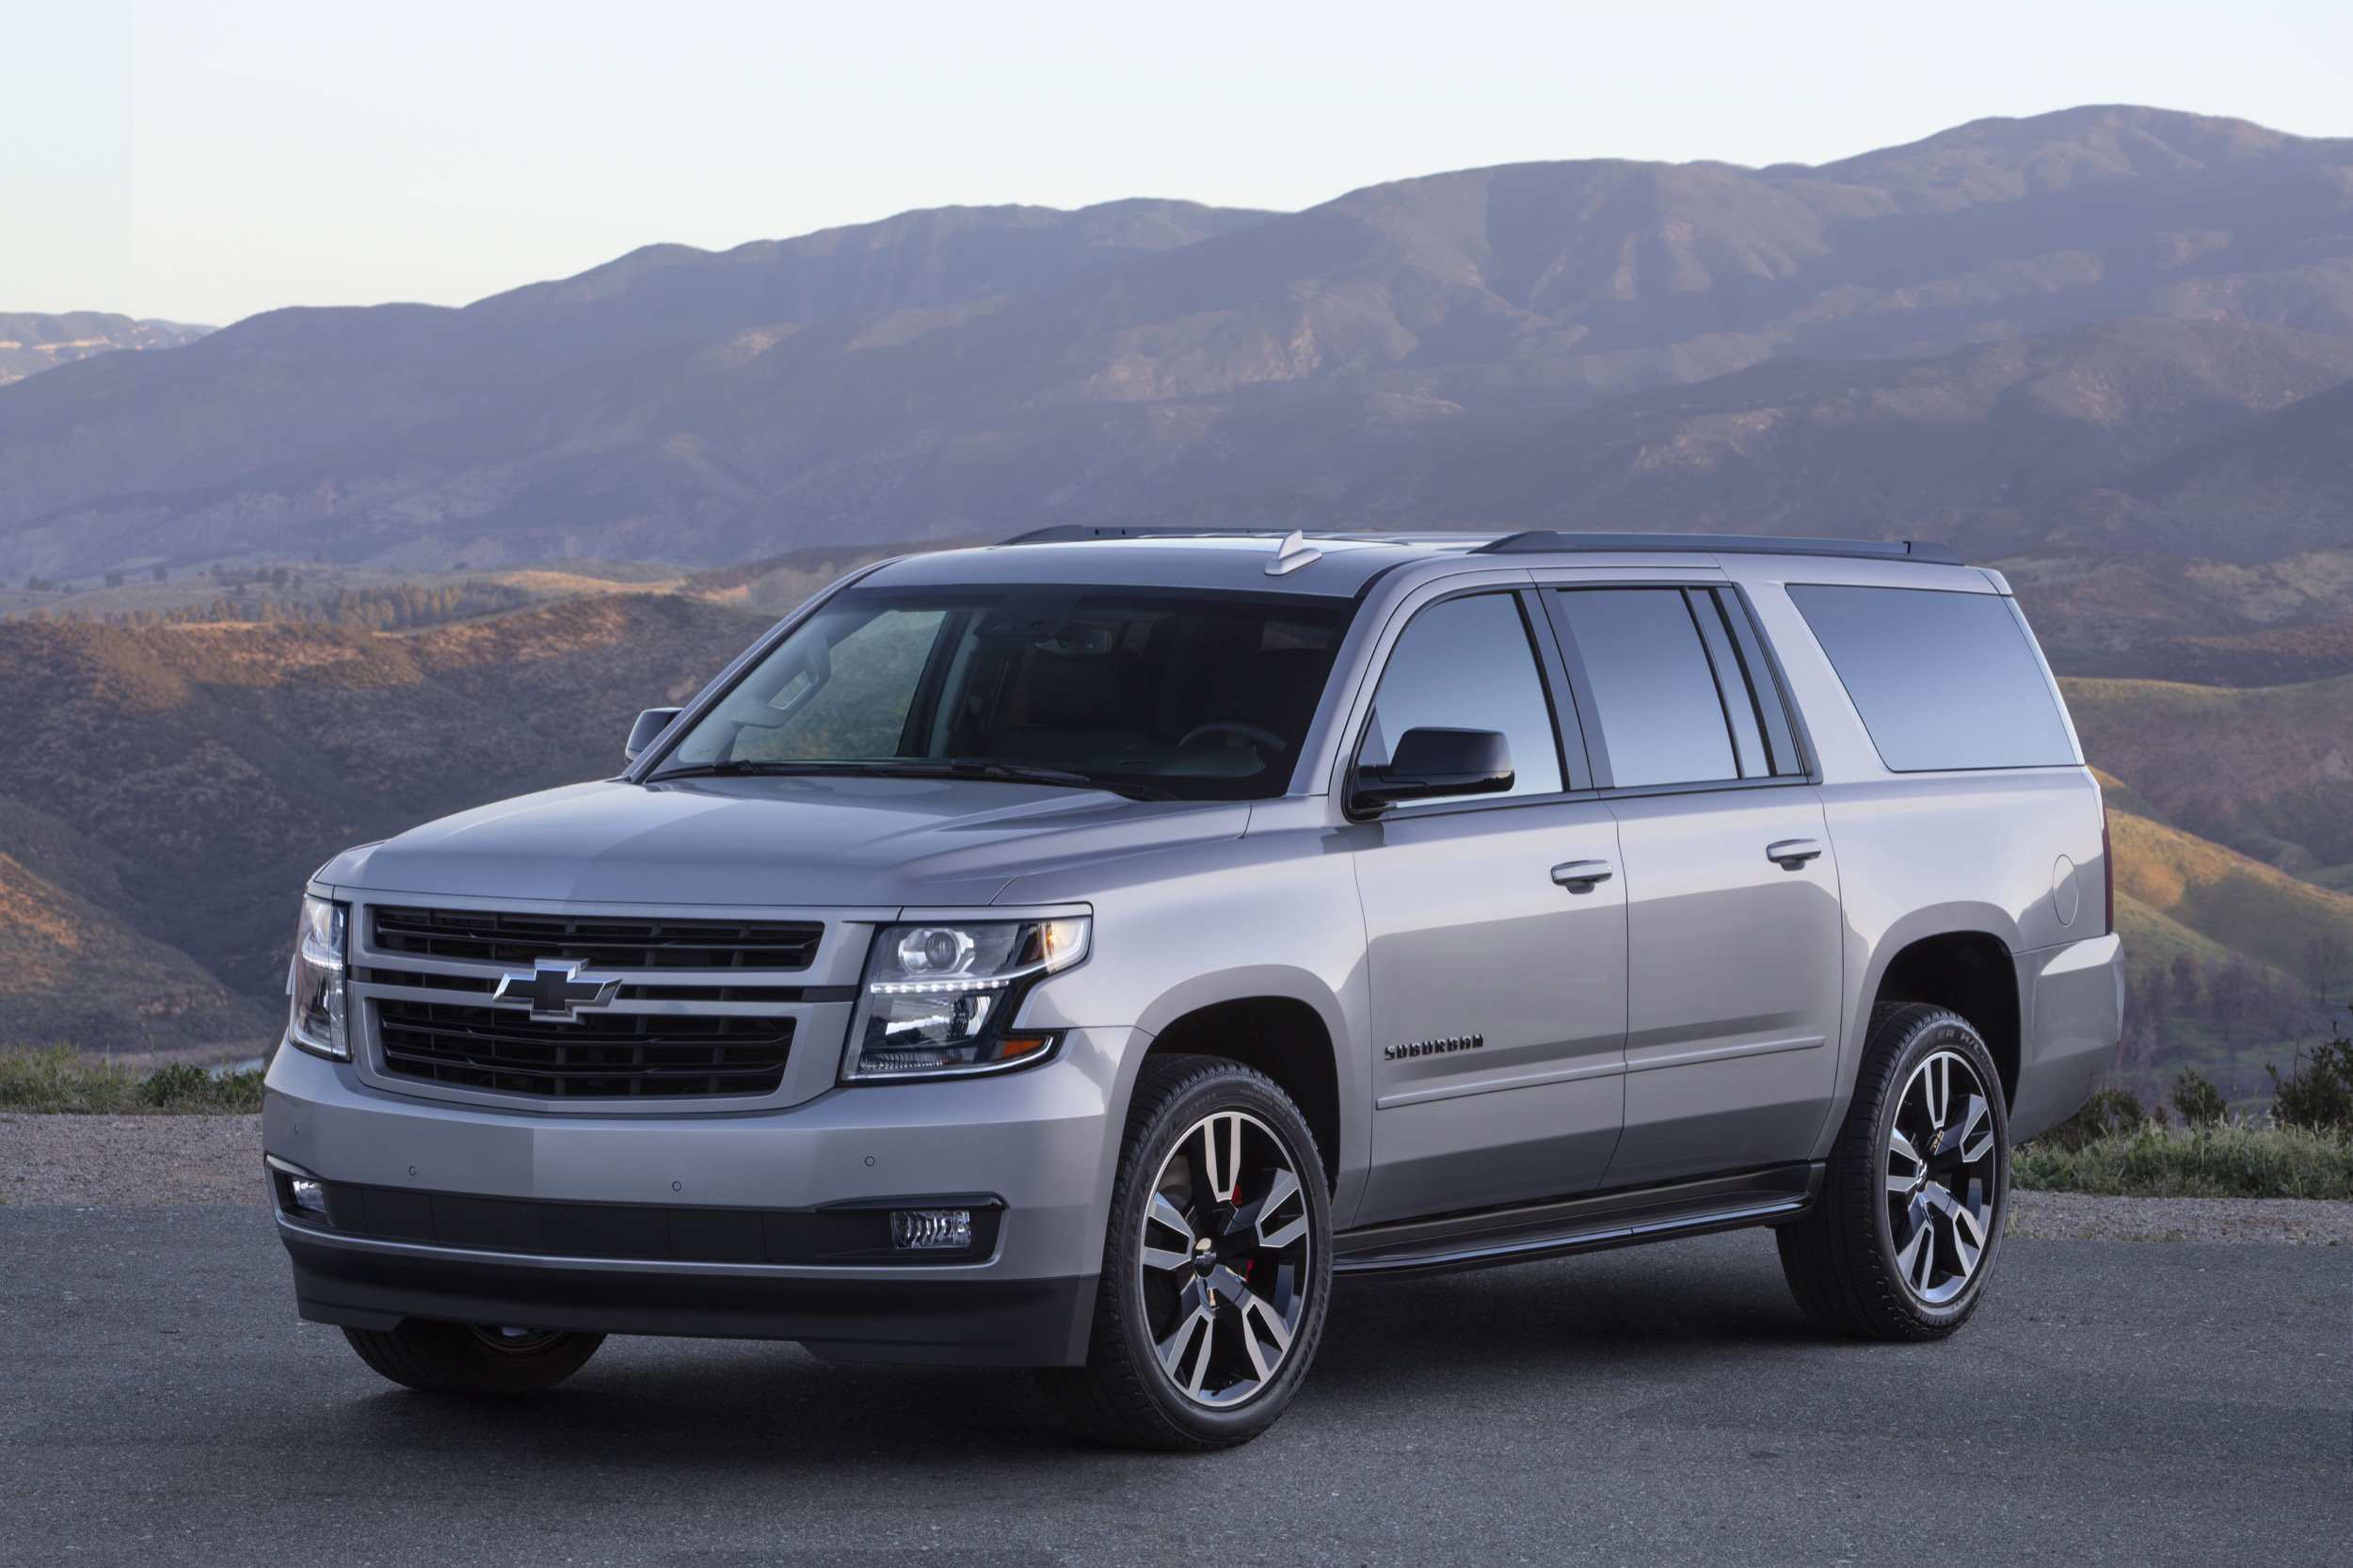 61 Best Review 2020 Chevrolet Suburban Interior with 2020 Chevrolet Suburban